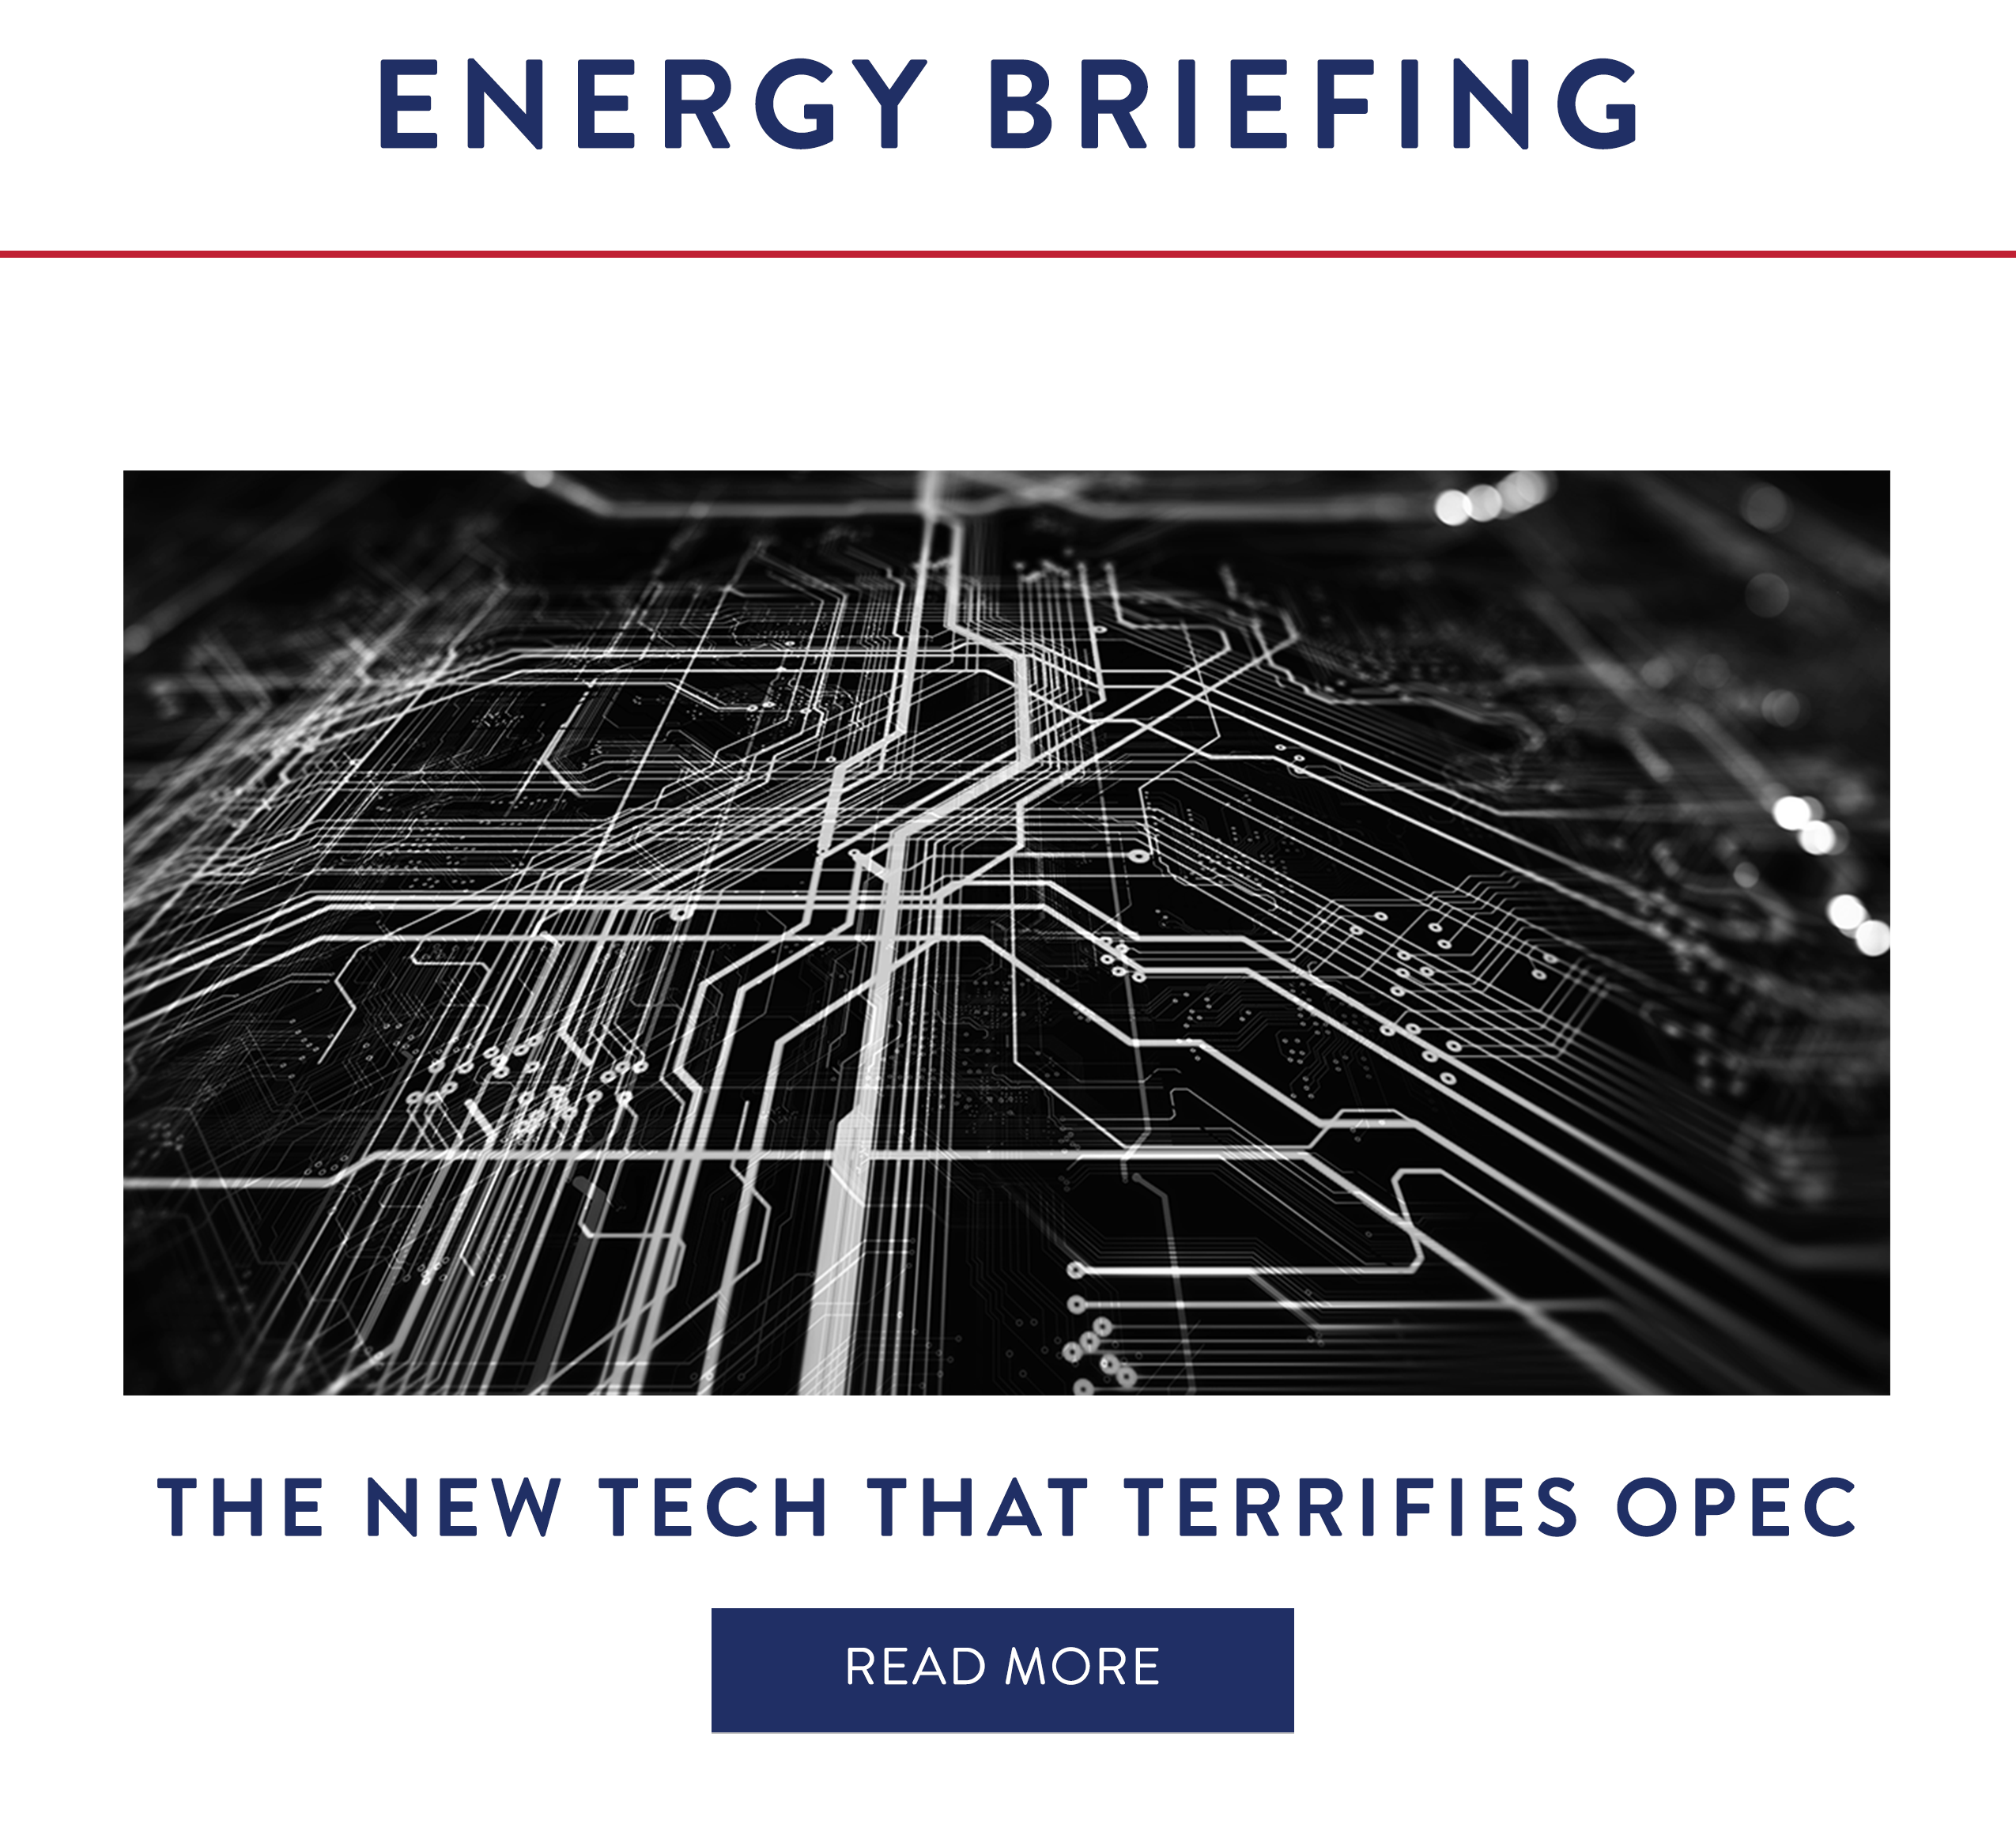 The New Tech That Terrifies OPEC